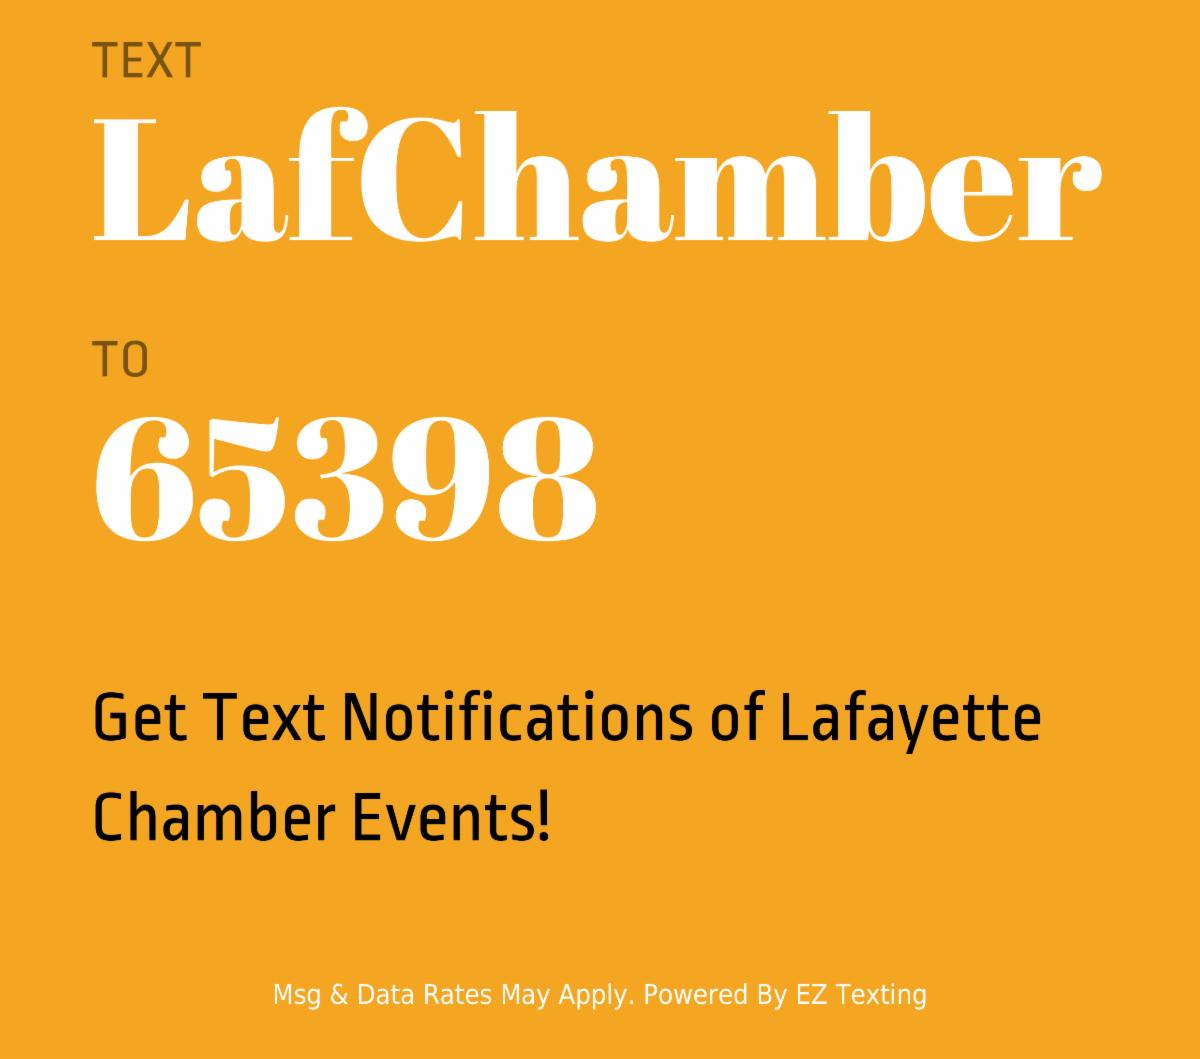 Text for Chamber Events!